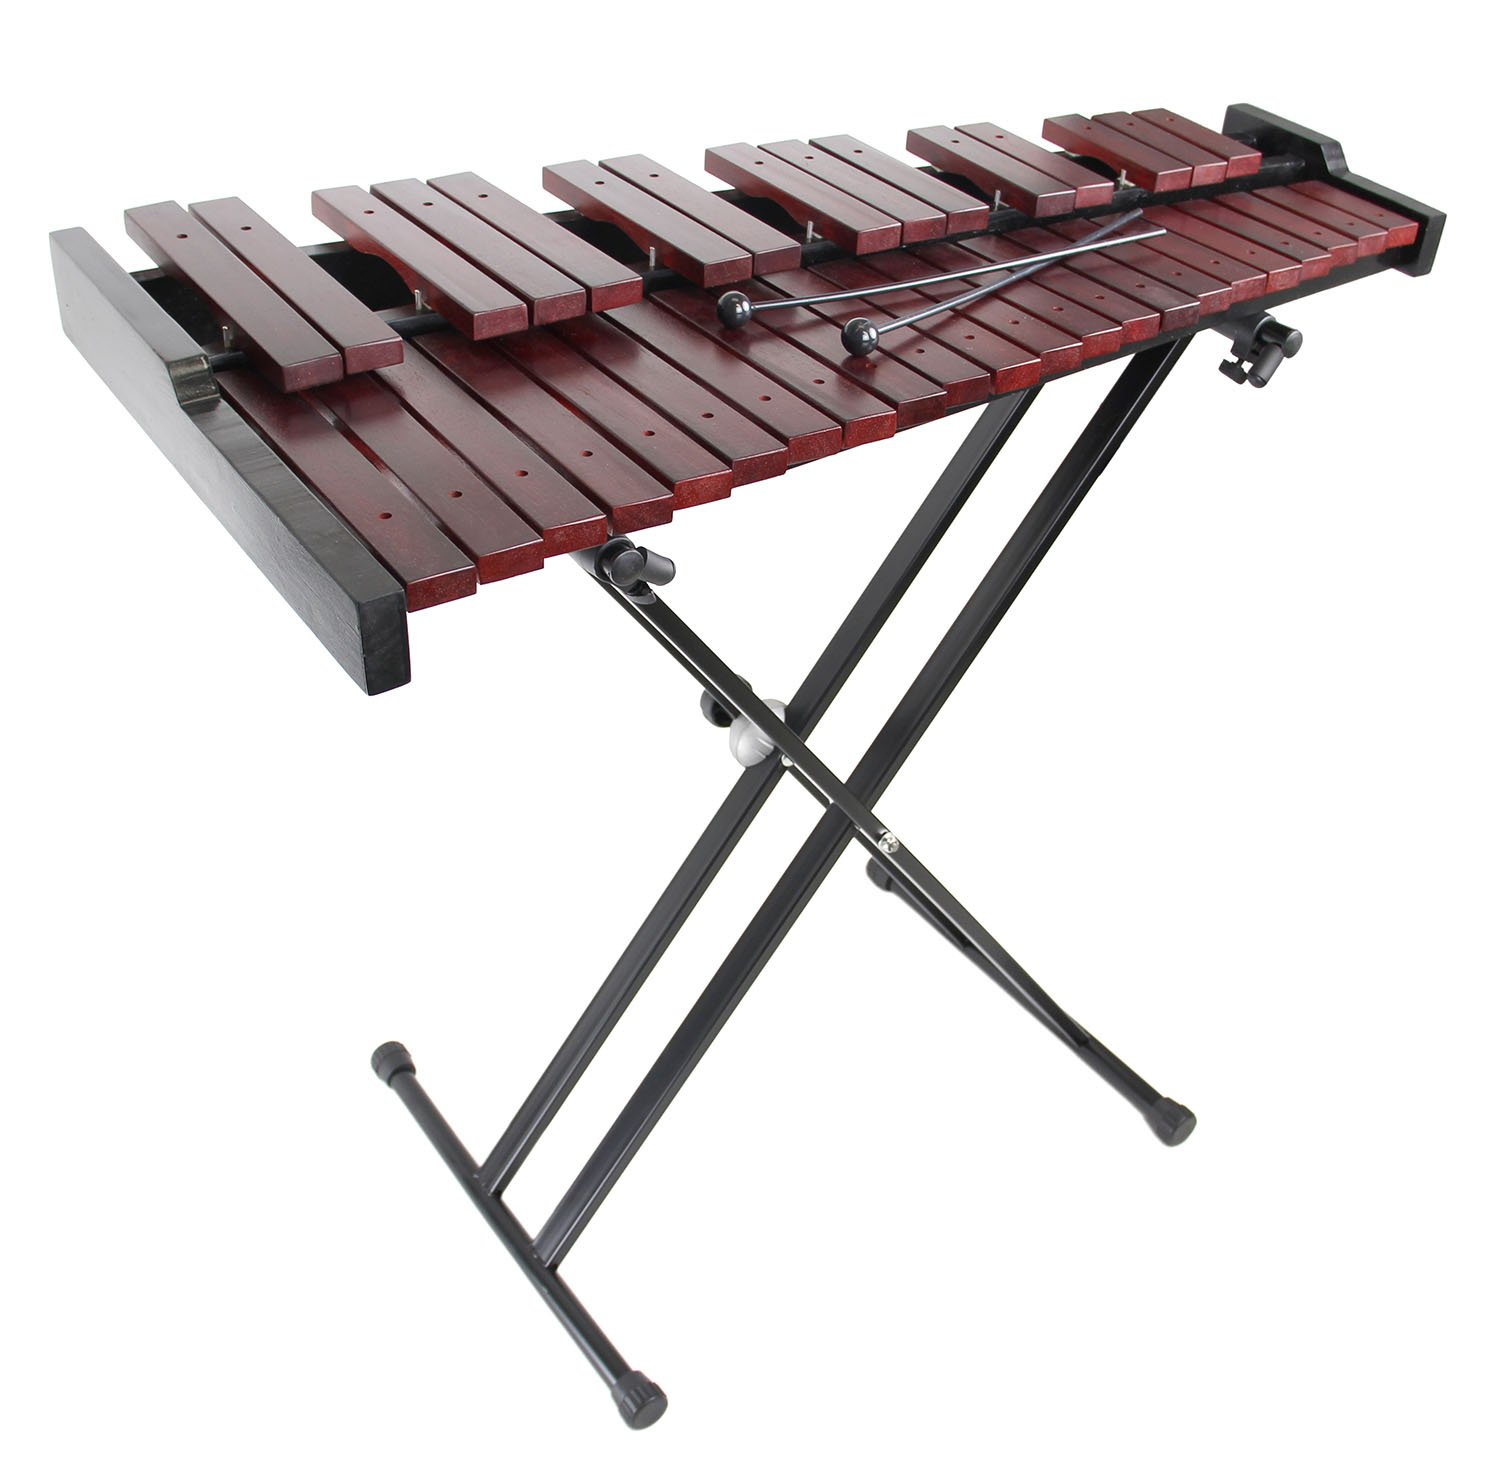 Gearlux 37-Key Wooden Xylophone with Mallets, Stand, and Gig Bag XYLO-SET-37